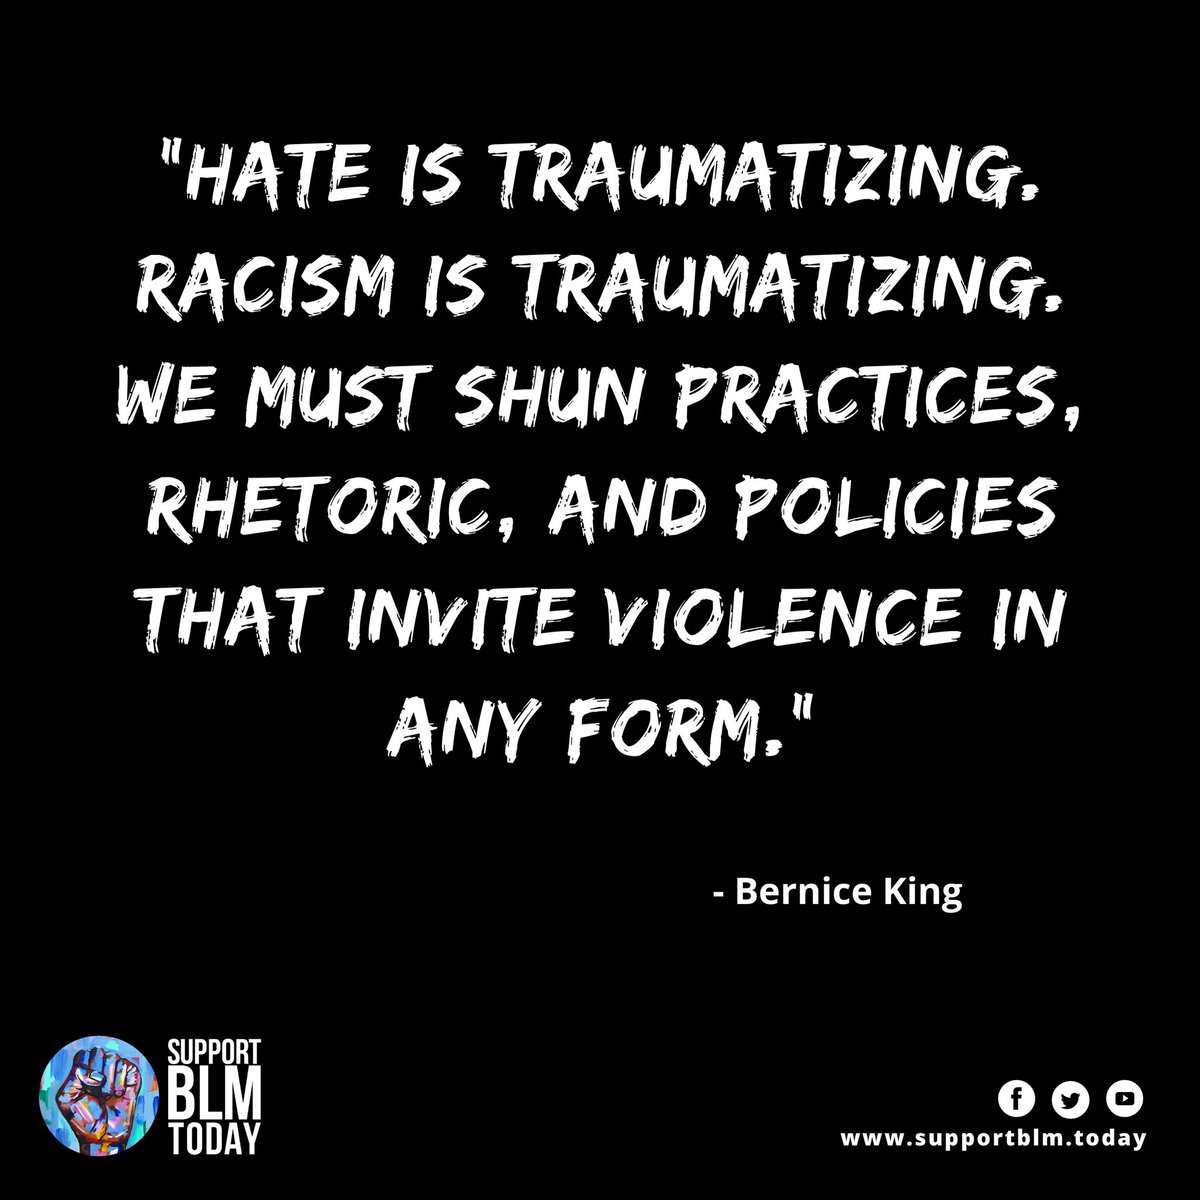 Racism is traumatizing    #blacklivesmatter #blmquotes #blm #blm2021 #equality #racism #solidarity #blacklives #mlk #blmmovement #nojusticenopeace #blacklivesmatterplaza #blmprotest #blmfist